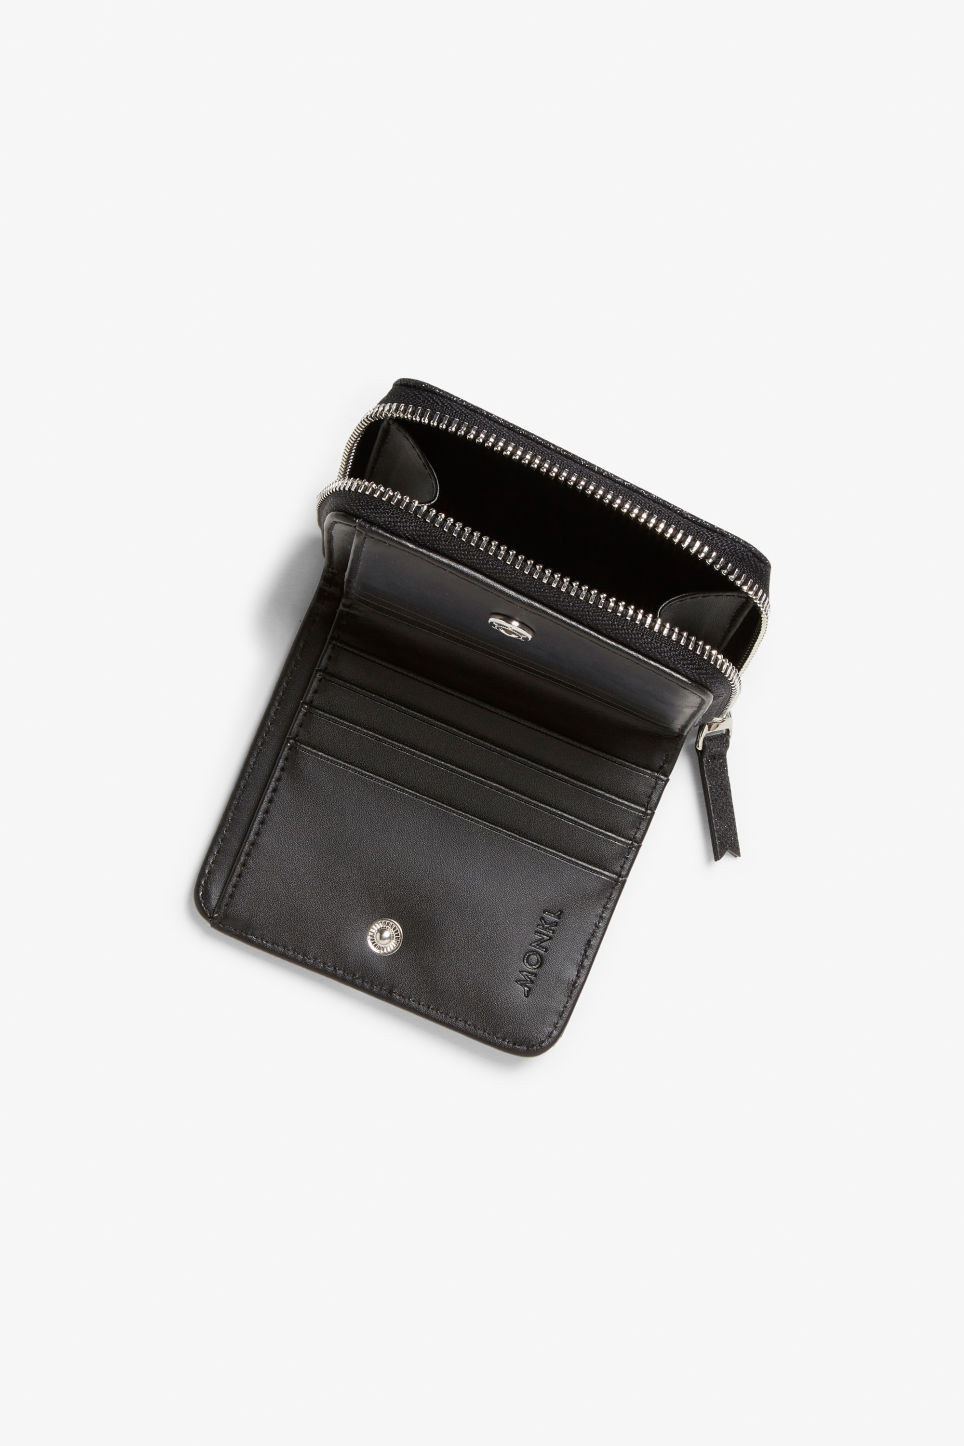 Detailed image of Monki coin purse wallet in black